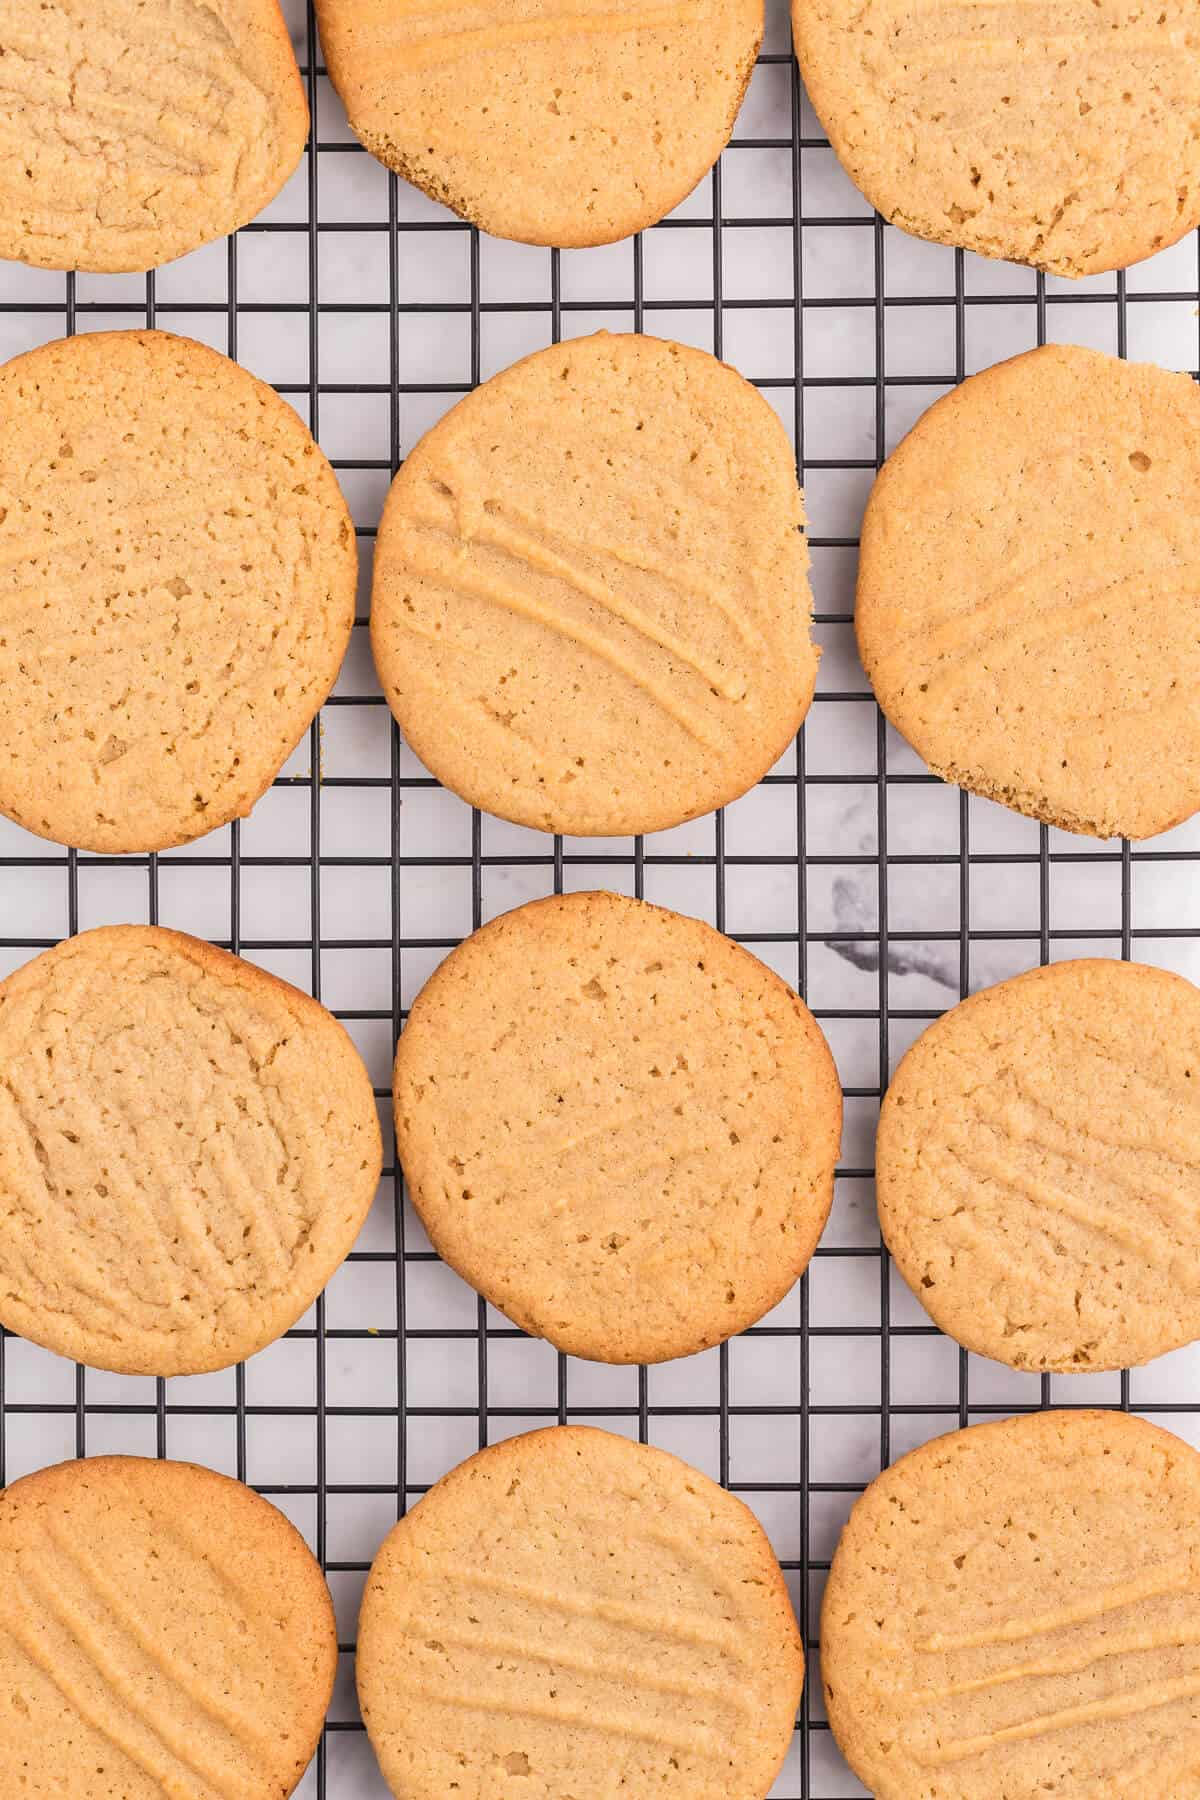 Peanut Butter Cookies - This classic homemade cookie recipe is quick and easy to make. Each bite is soft, chewy and full of peanut butter flavor that everyone knows and loves.